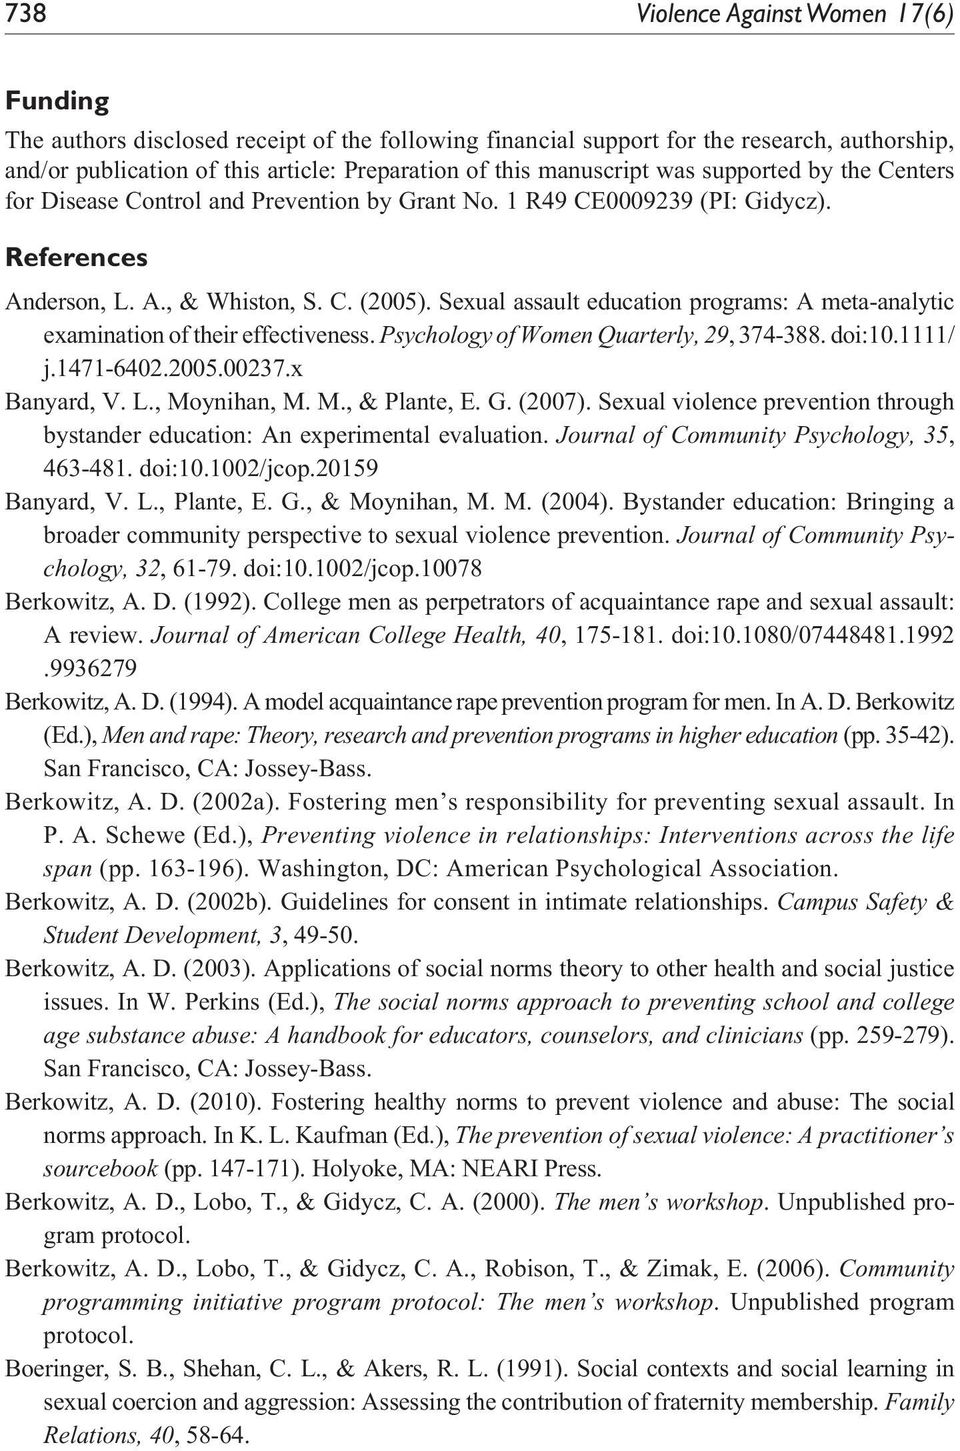 Sexual assault education programs: A meta-analytic examination of their effectiveness. Psychology of Women Quarterly, 29, 374-388. doi:10.1111/ j.1471-6402.2005.00237.x Banyard, V. L., Mo